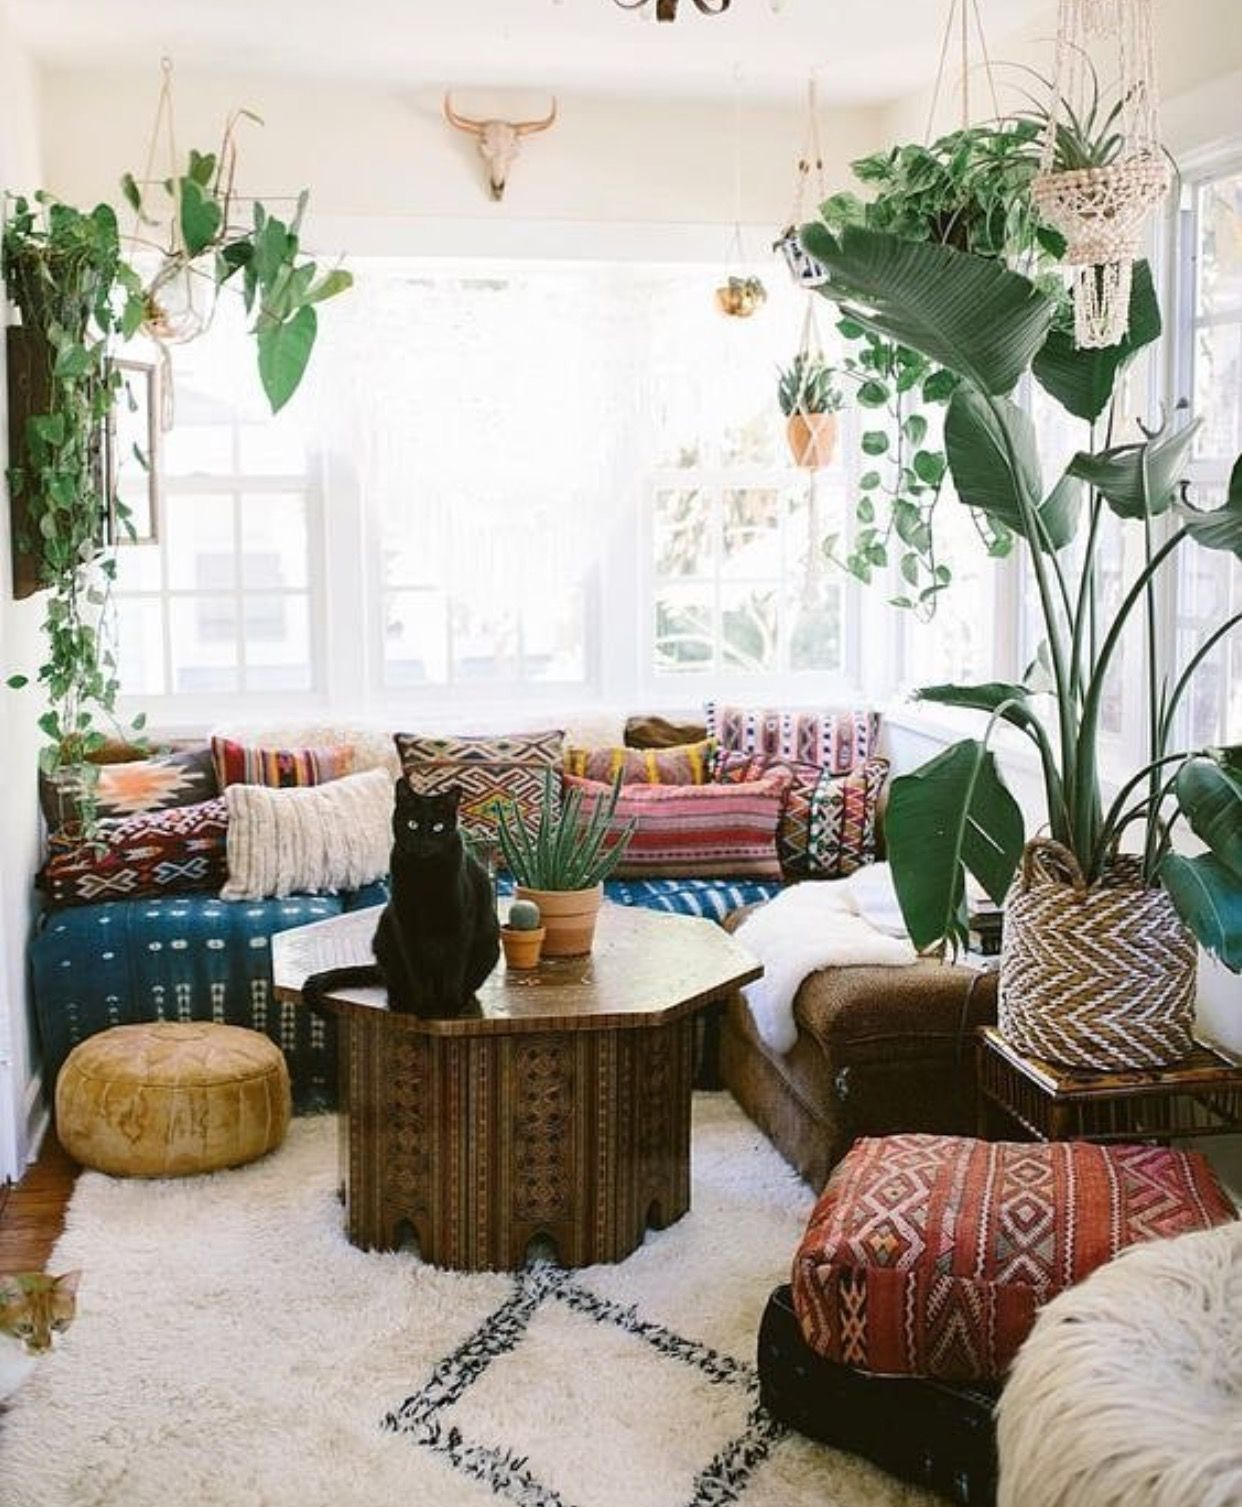 Pin by charlee on + home | Pinterest | Living rooms, Room and Boho